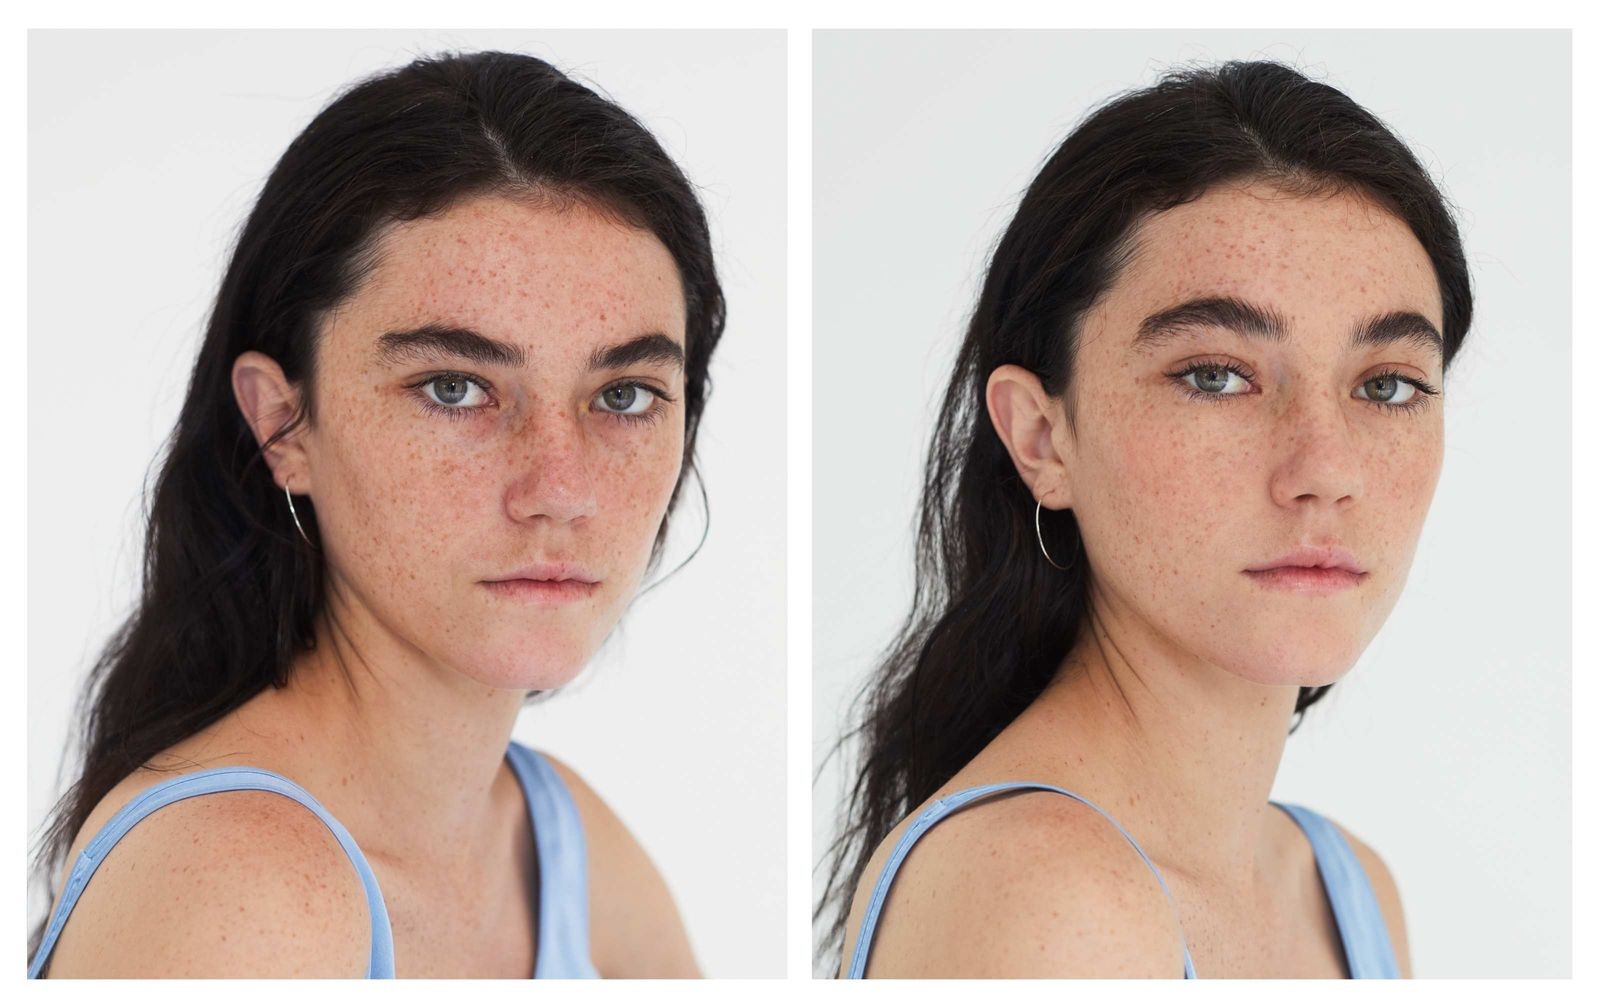 How to Do 'No-Makeup Makeup' When You Have Freckles